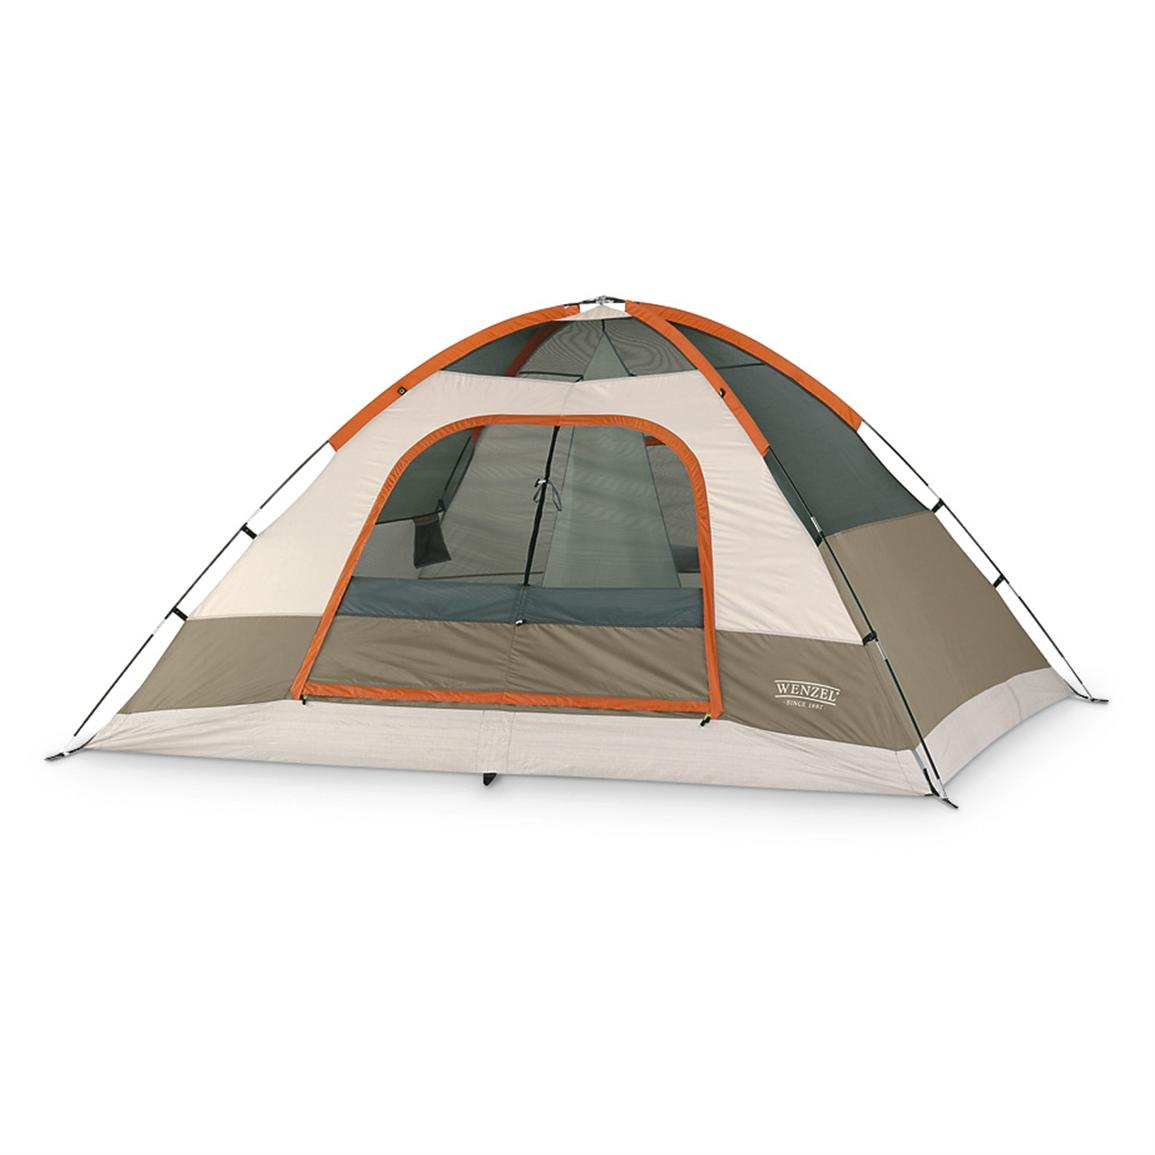 Wenzel® Pine Ridge 5-person Tent • Without Rainfly • Sleeps 5 • 10 feet x 8 inches • 5 feet high